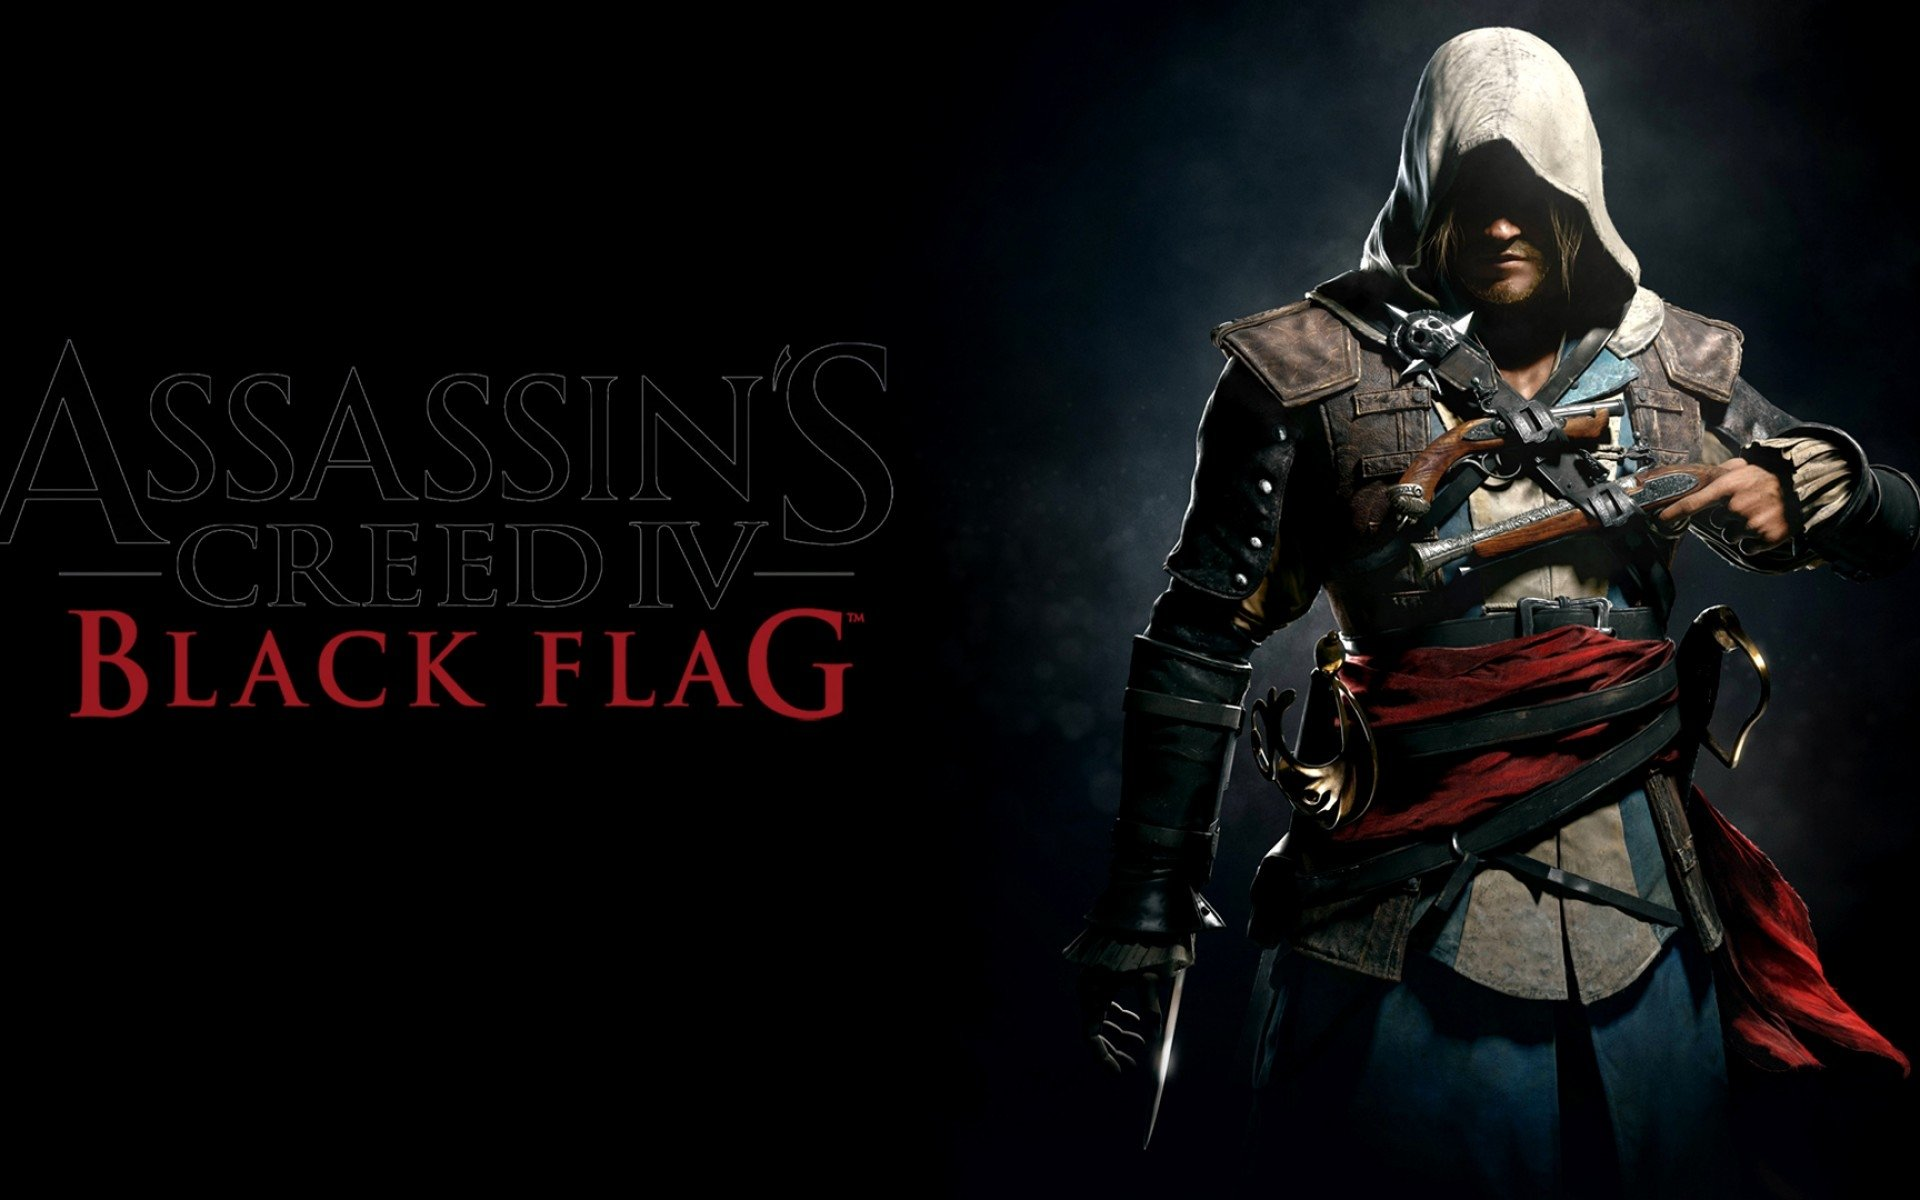 125 Assassin's Creed IV: Black Flag HD Wallpapers